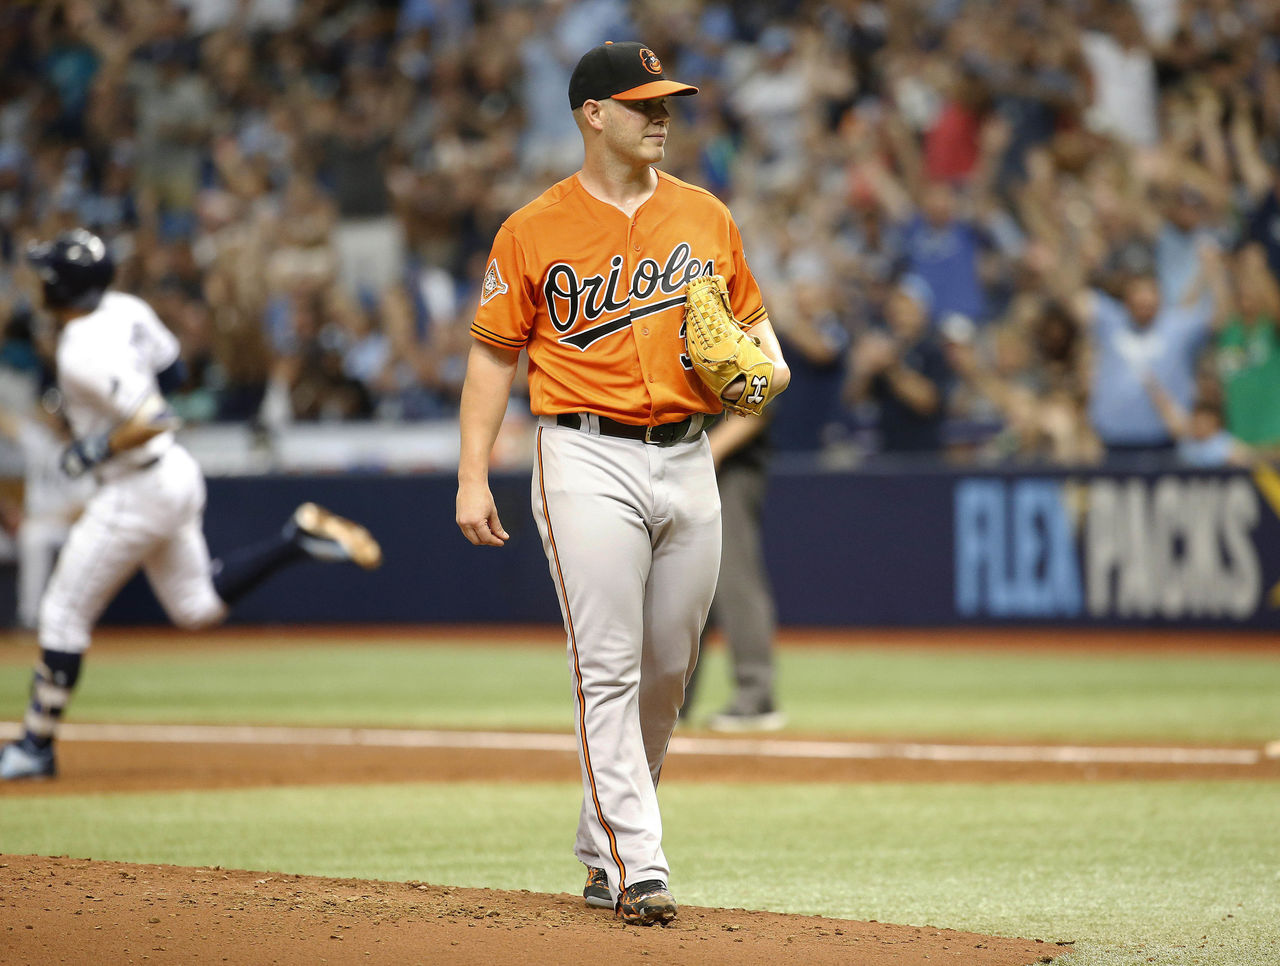 Cropped 2017 06 24t214848z 2033829913 nocid rtrmadp 3 mlb baltimore orioles at tampa bay rays